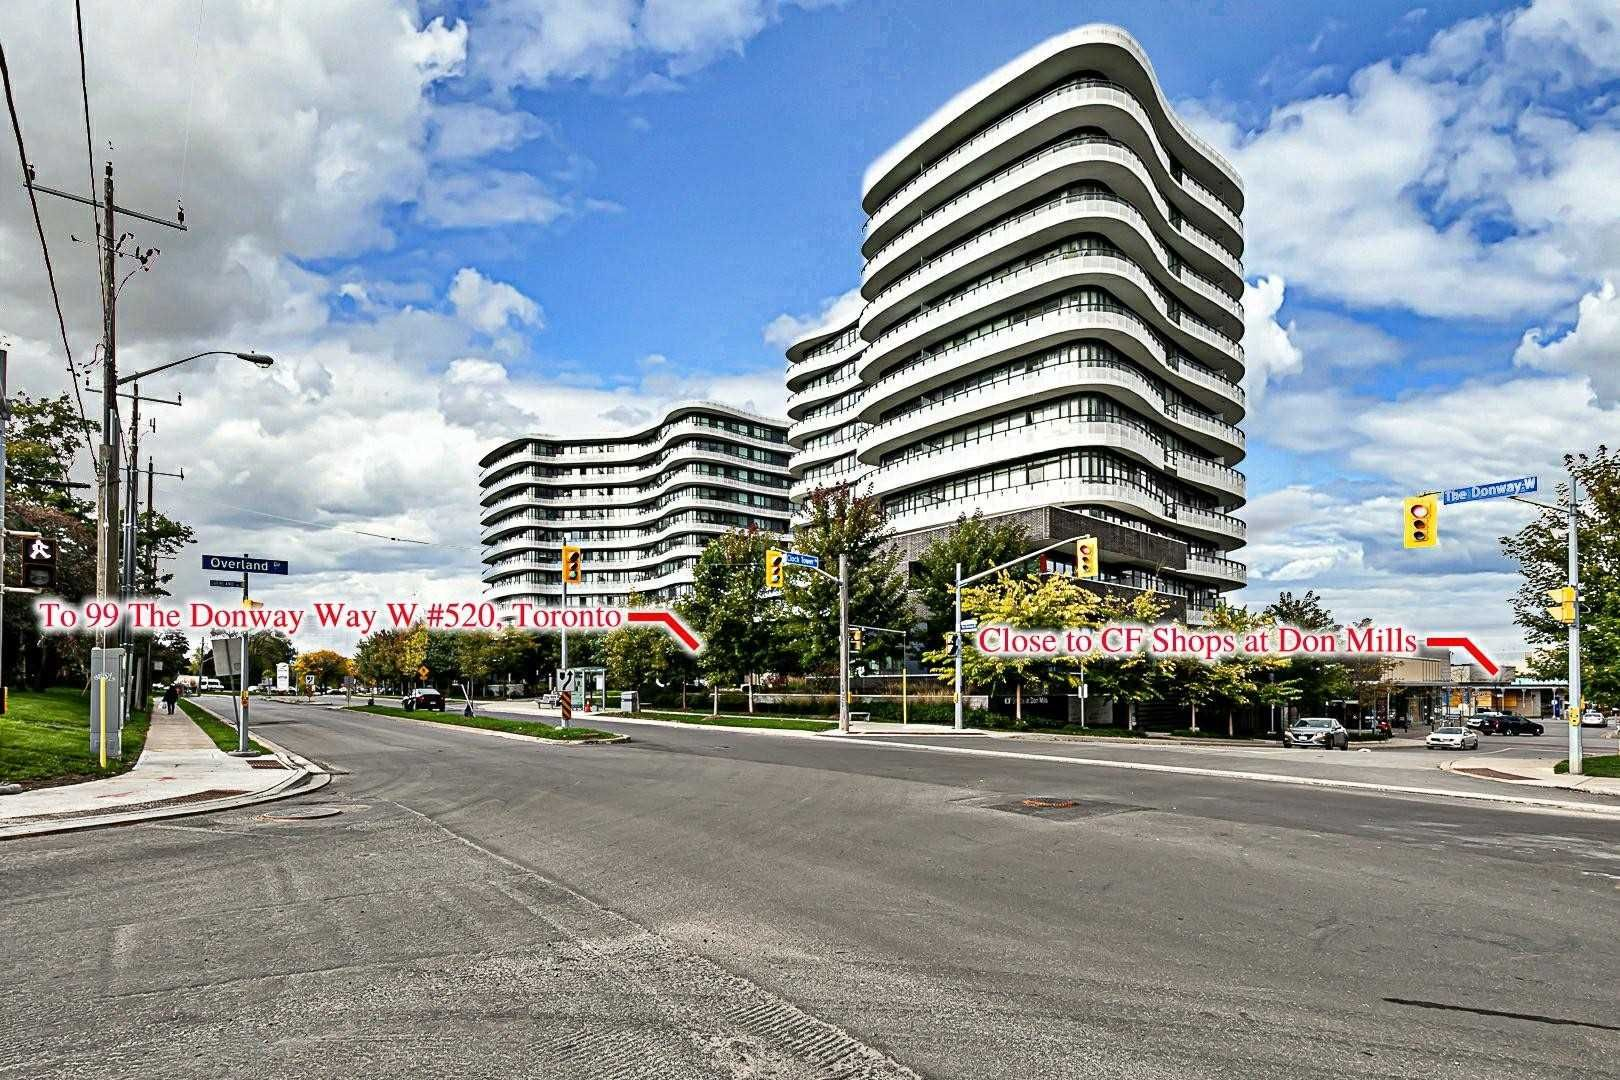 99 The Donway Way W, unit 520 for sale in Don Mills - image #1